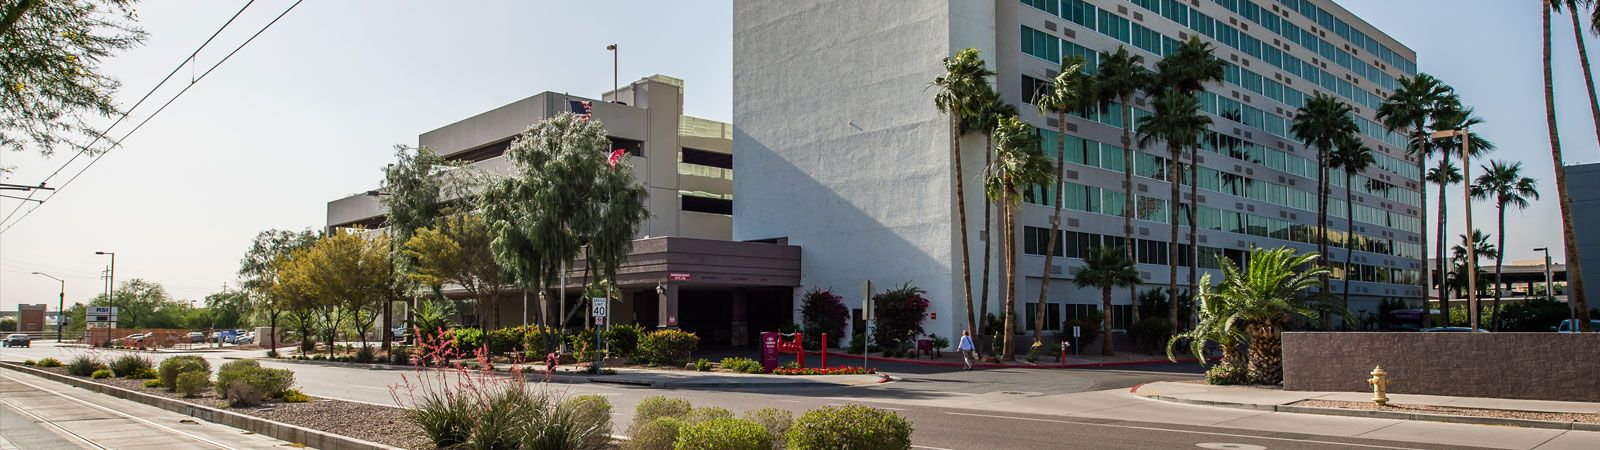 Phoenix, Arizona Hotel Easily Accessible from Highways